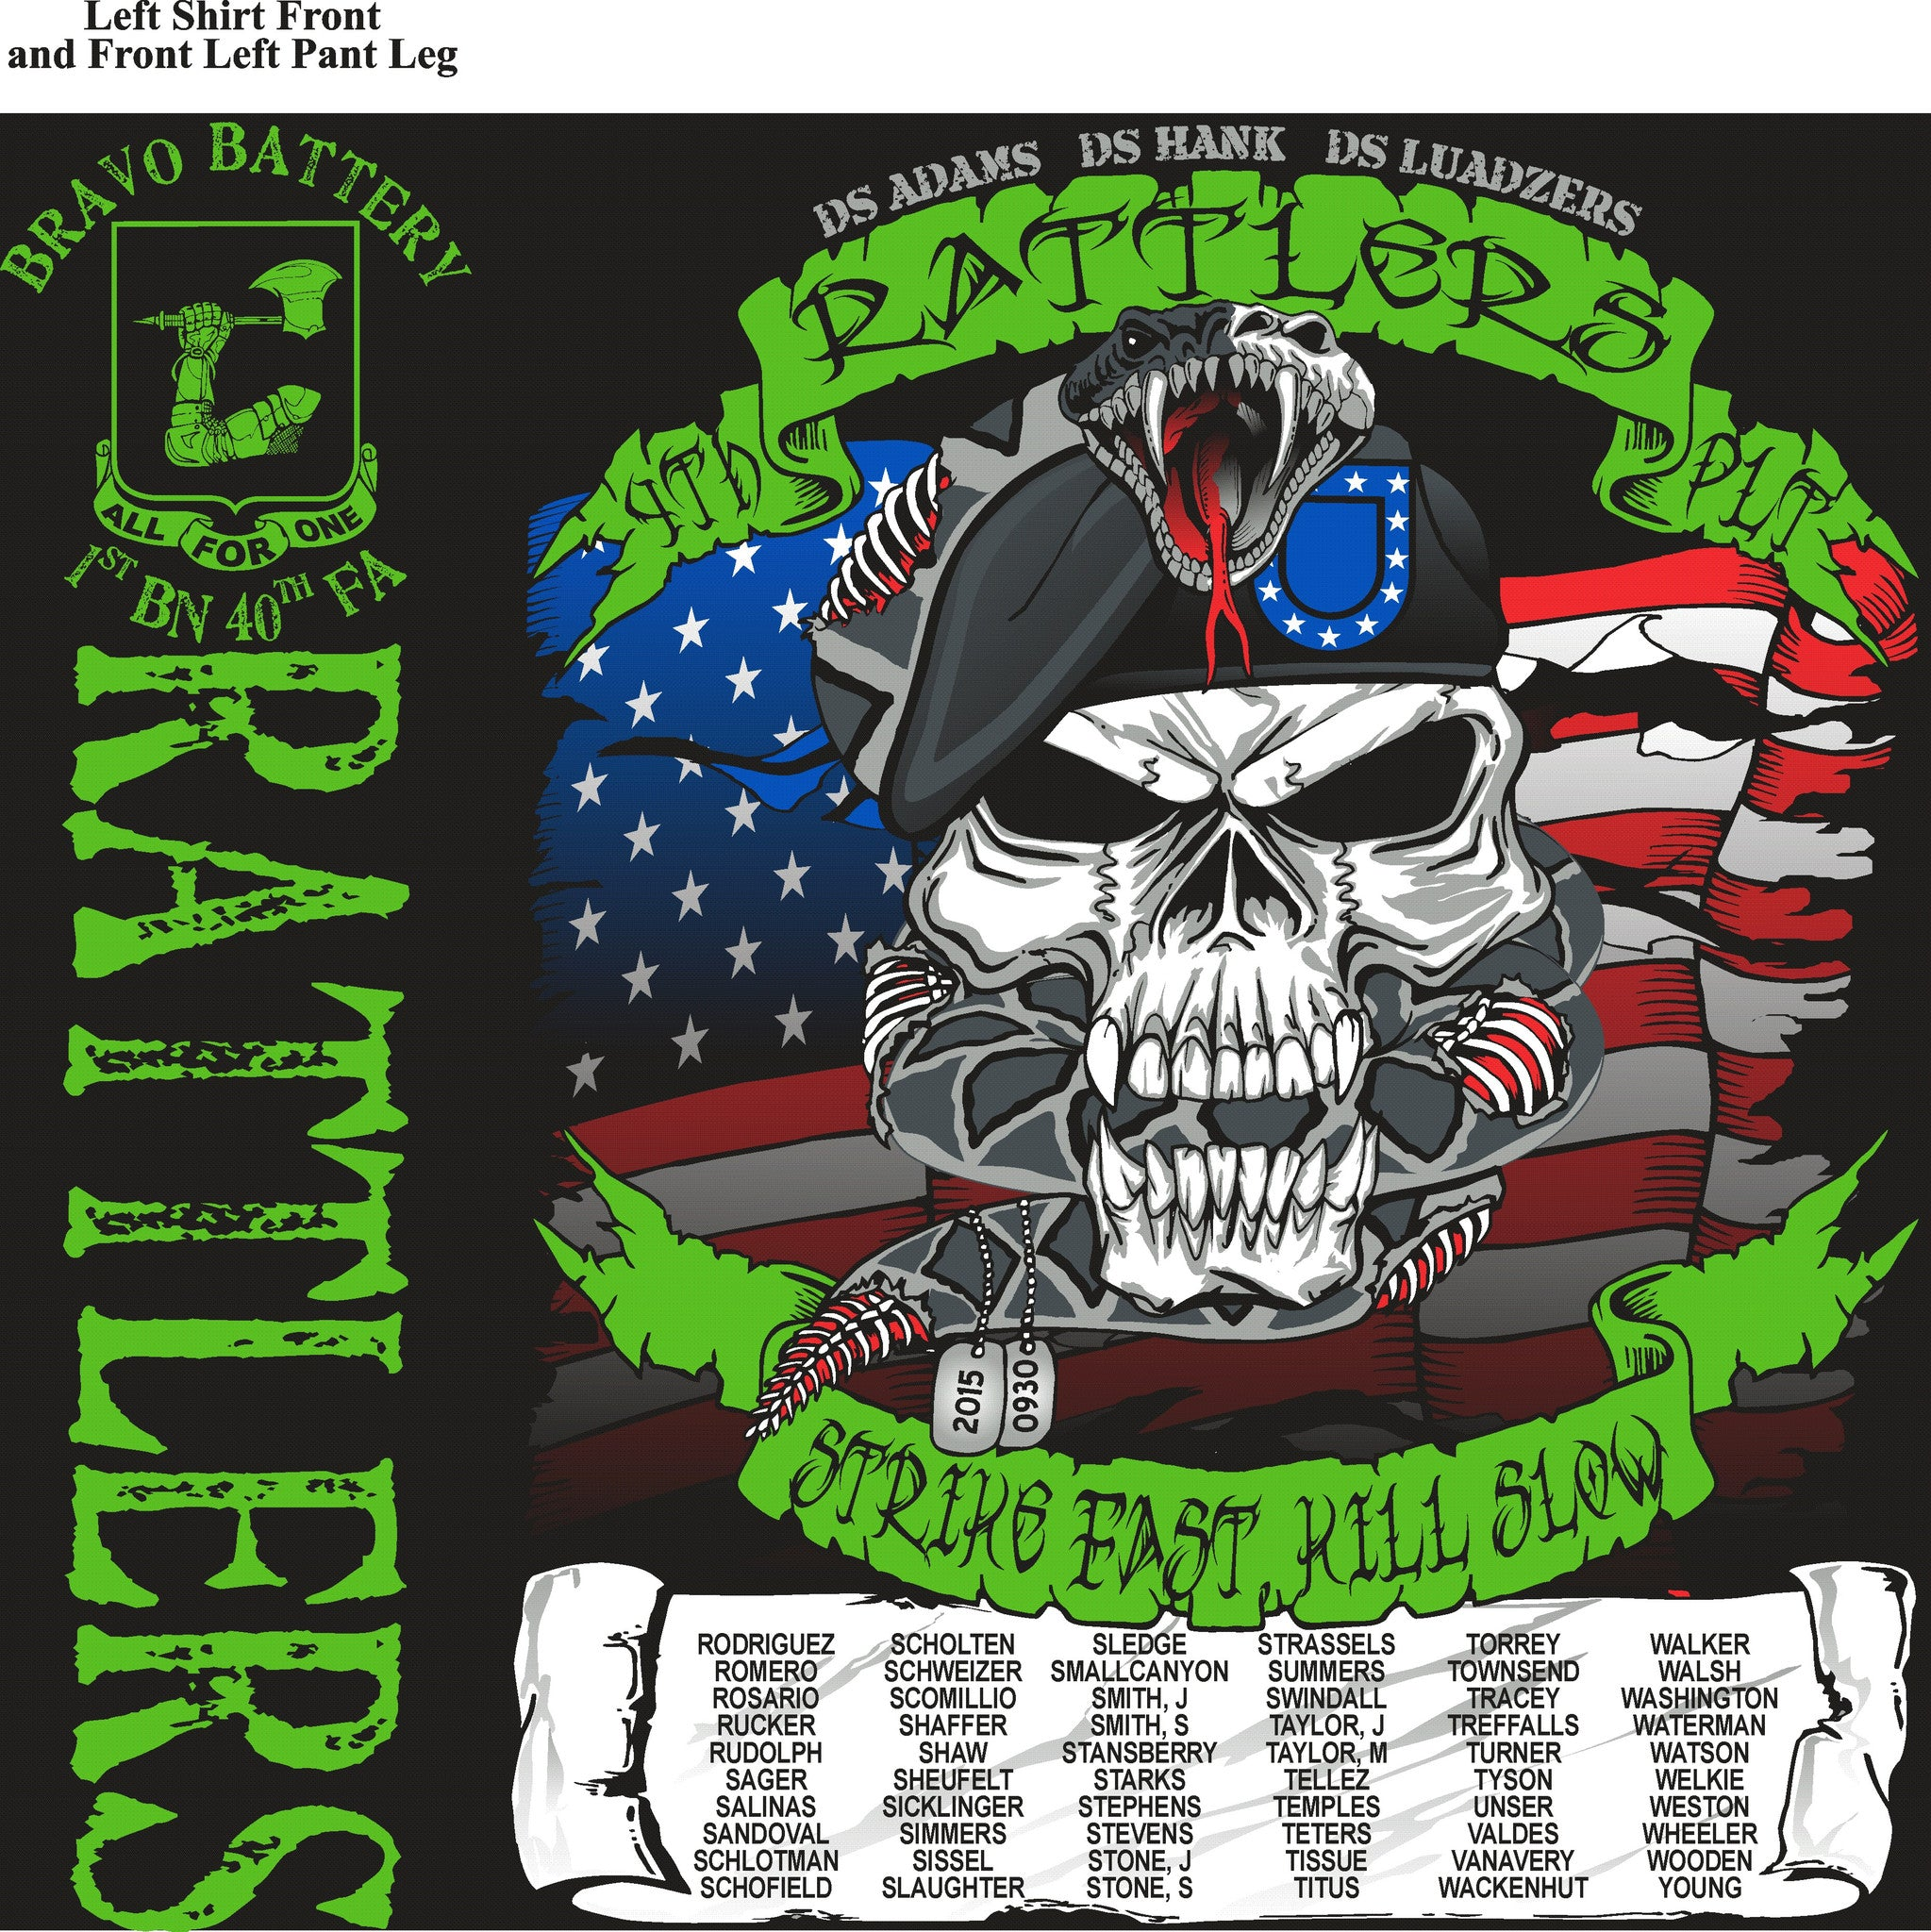 Platoon Shirts BRAVO 1st 40th RATTLERS SEPT 2015